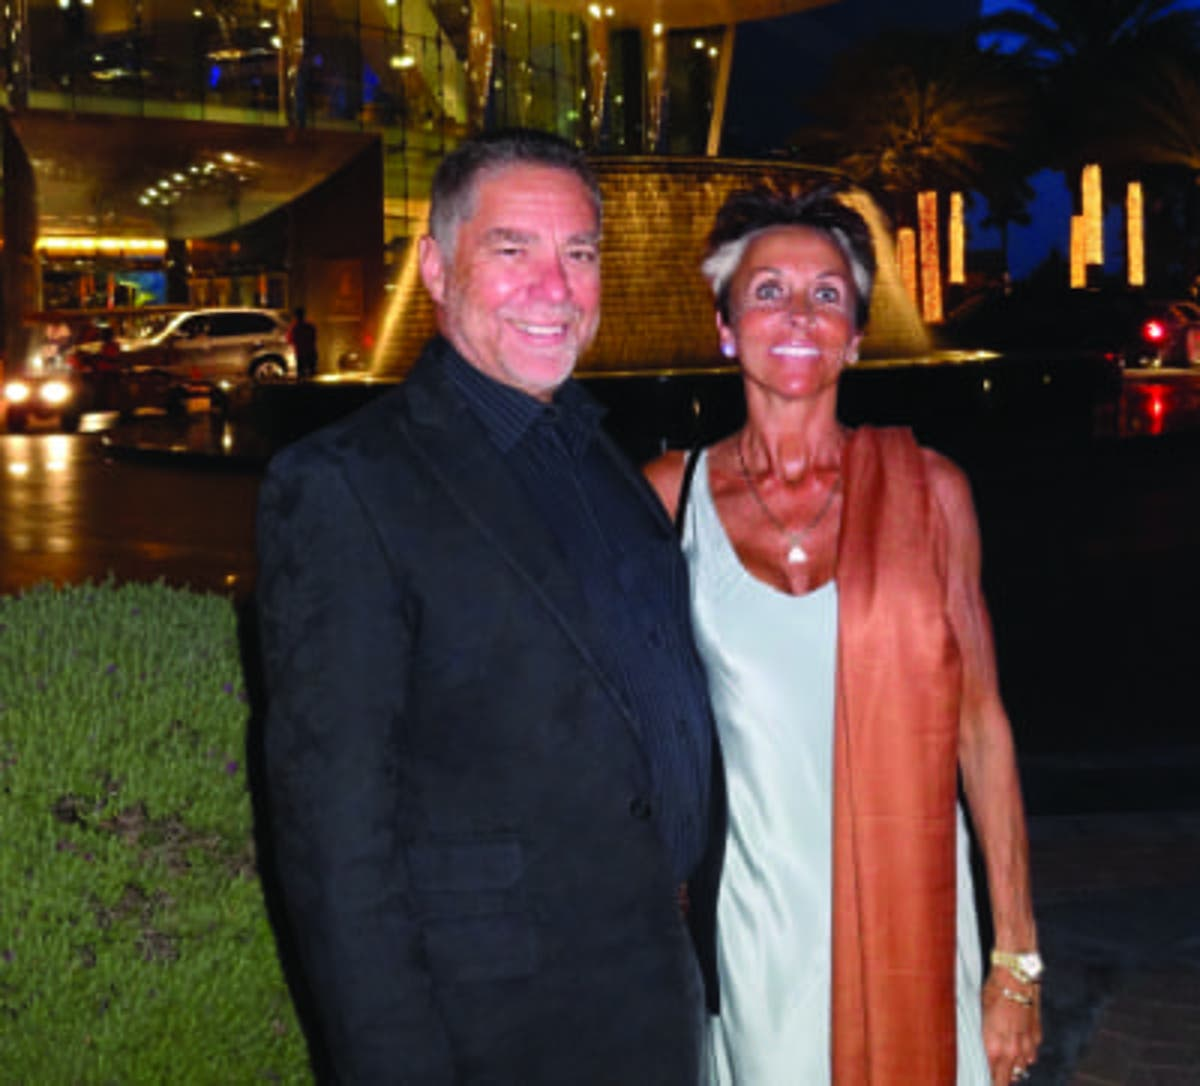 Terence Wright and his wife Lesley - enjoying the good life while his victims suffer poverty in retirement